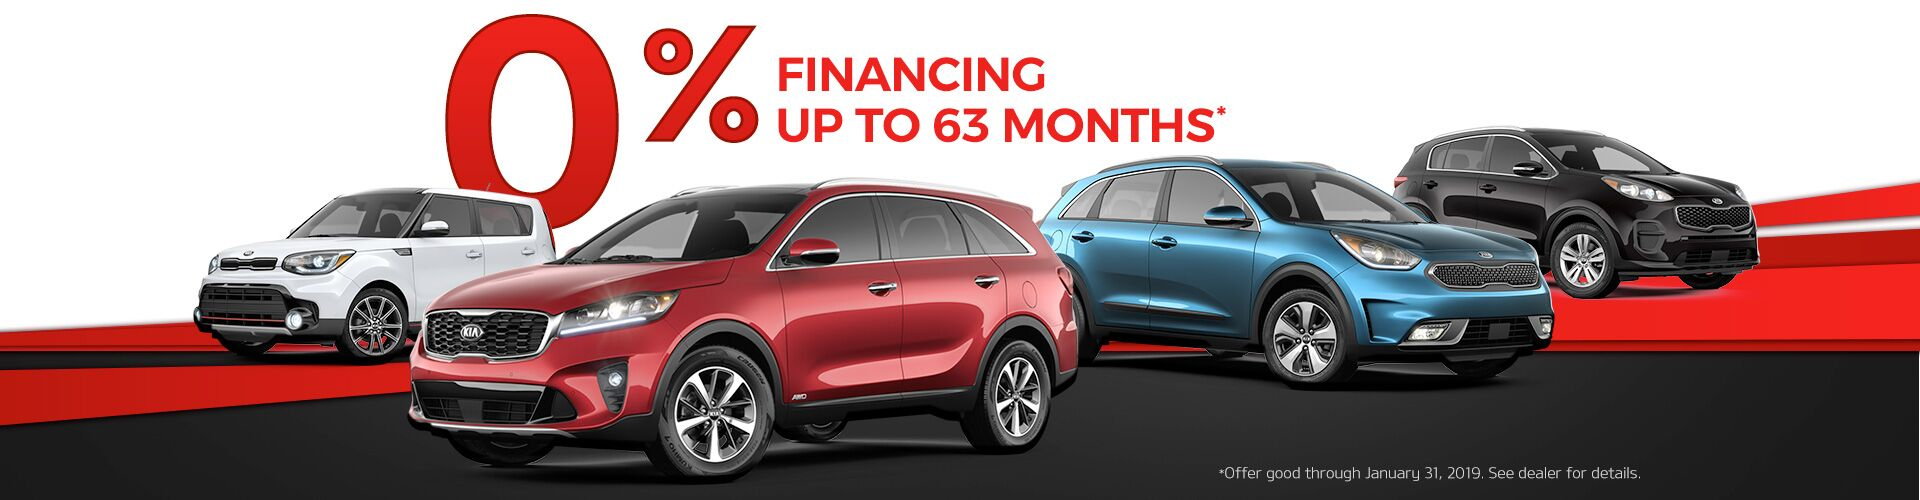 0% Financing for 63 Months